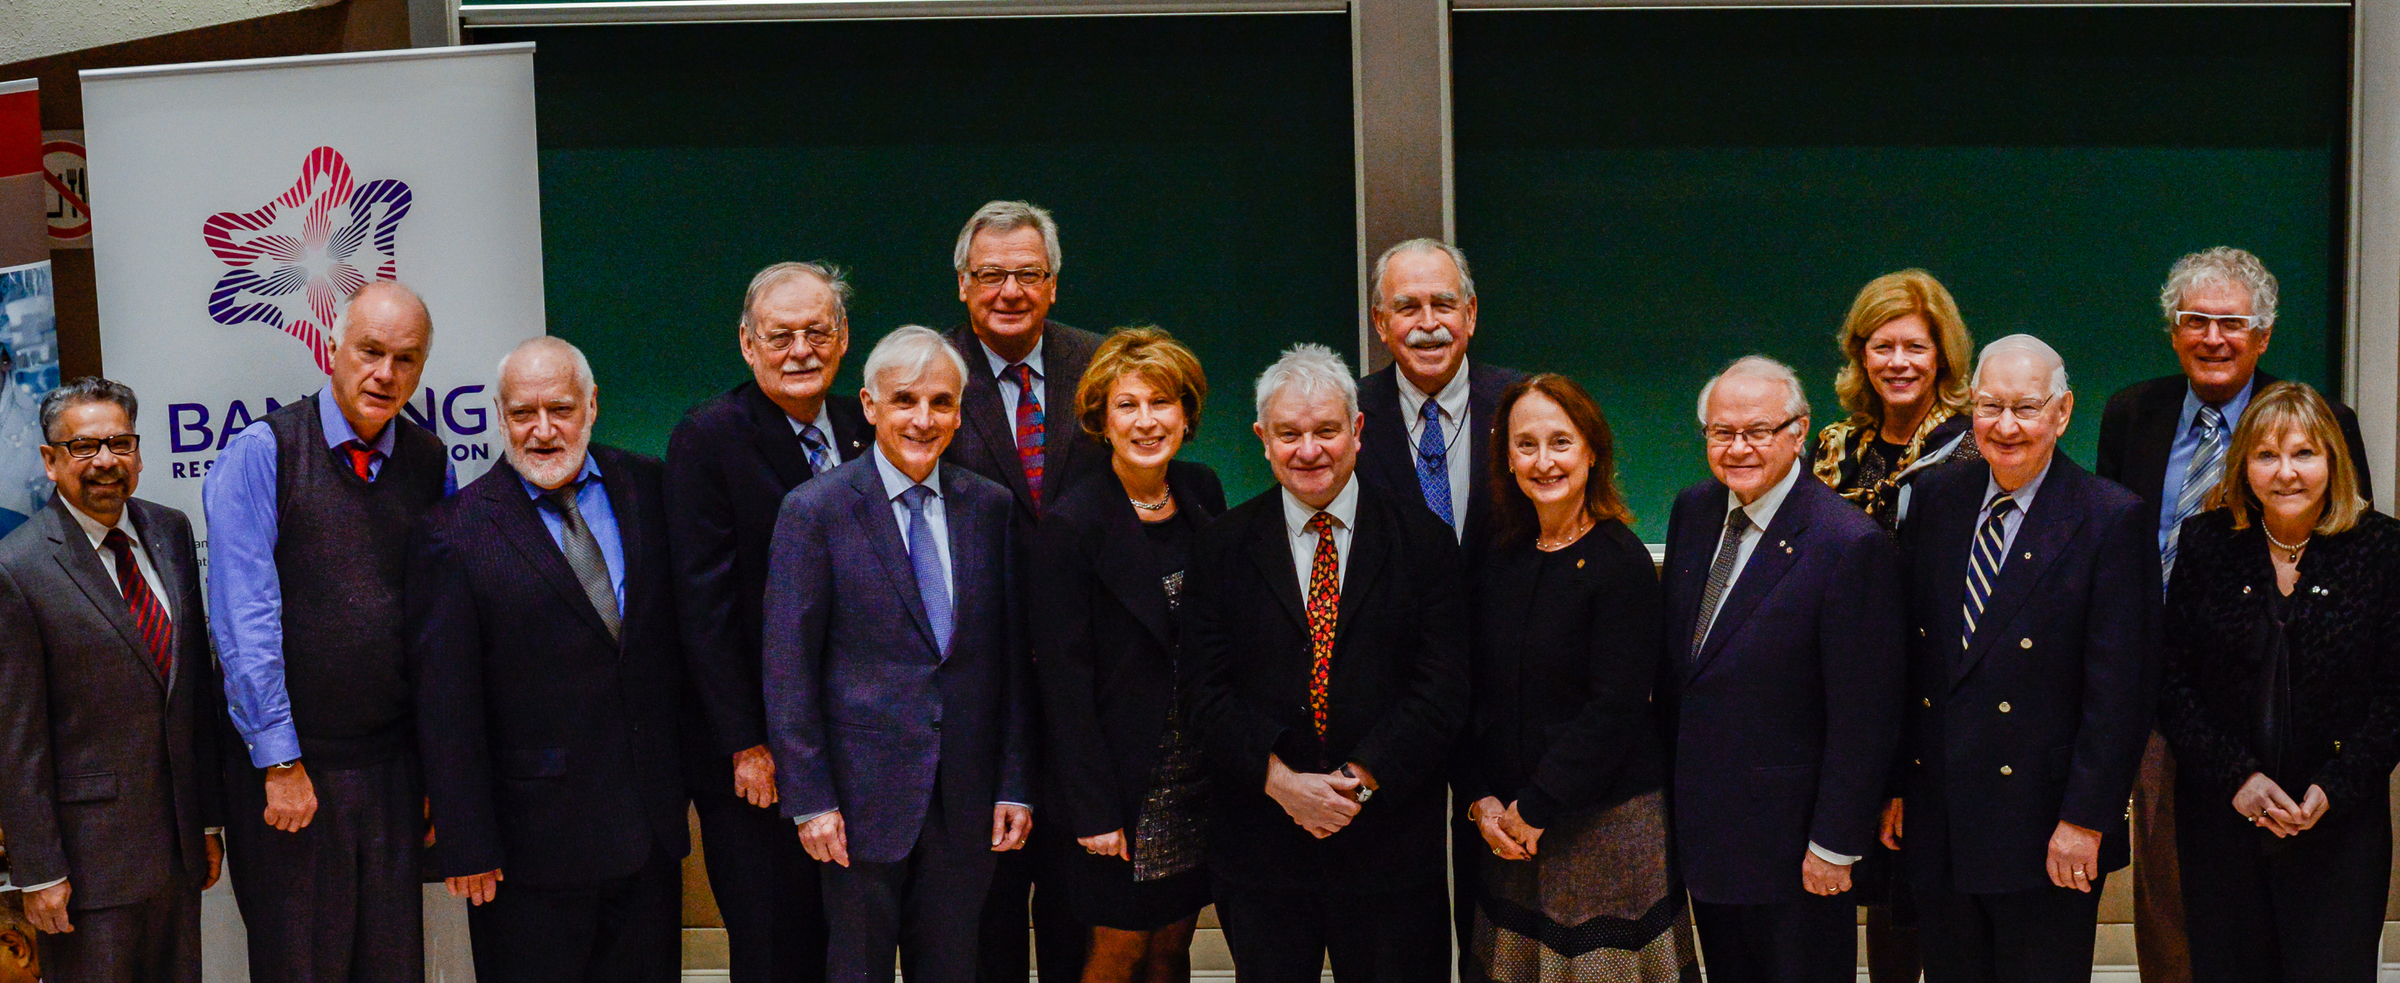 Large group photo - 2015 Friesen Prize Lecture at the University of Ottawa featuring Sir Paul Nurse - December 7, 2015